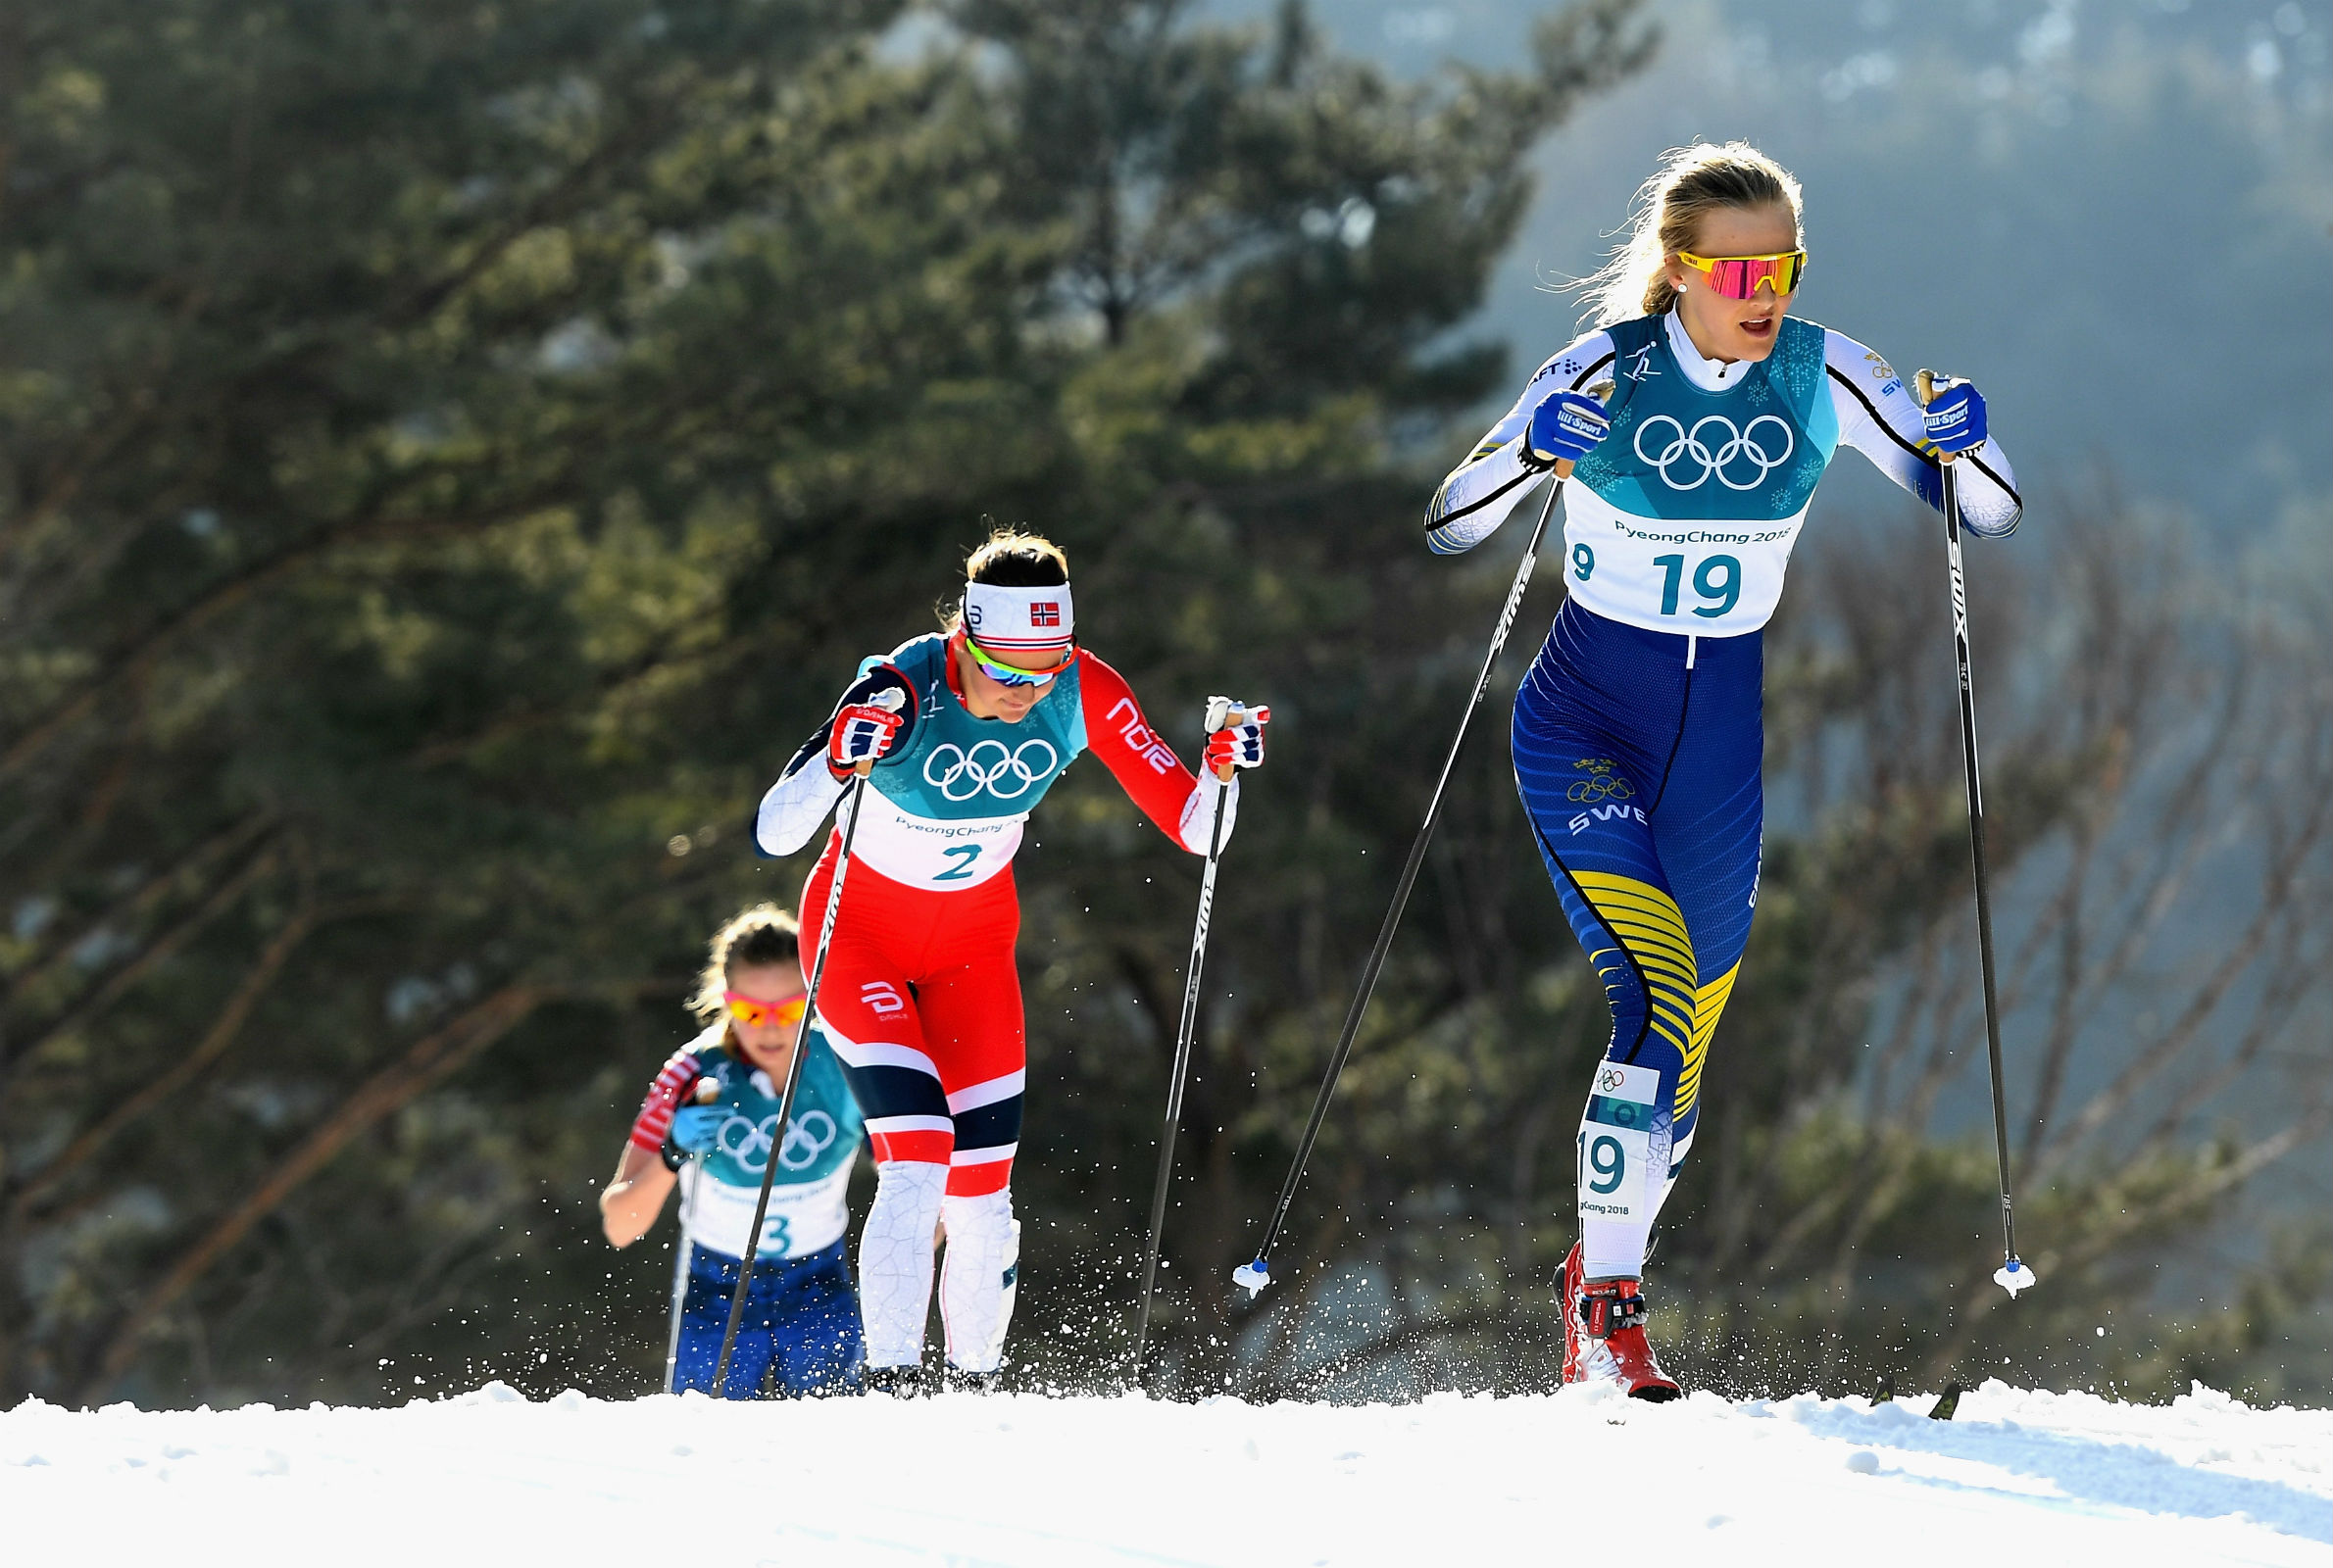 Cross Country Skiing At The 2020 Olympic Winter Games.Pyeongchang Cross Country Skiing Results Videos